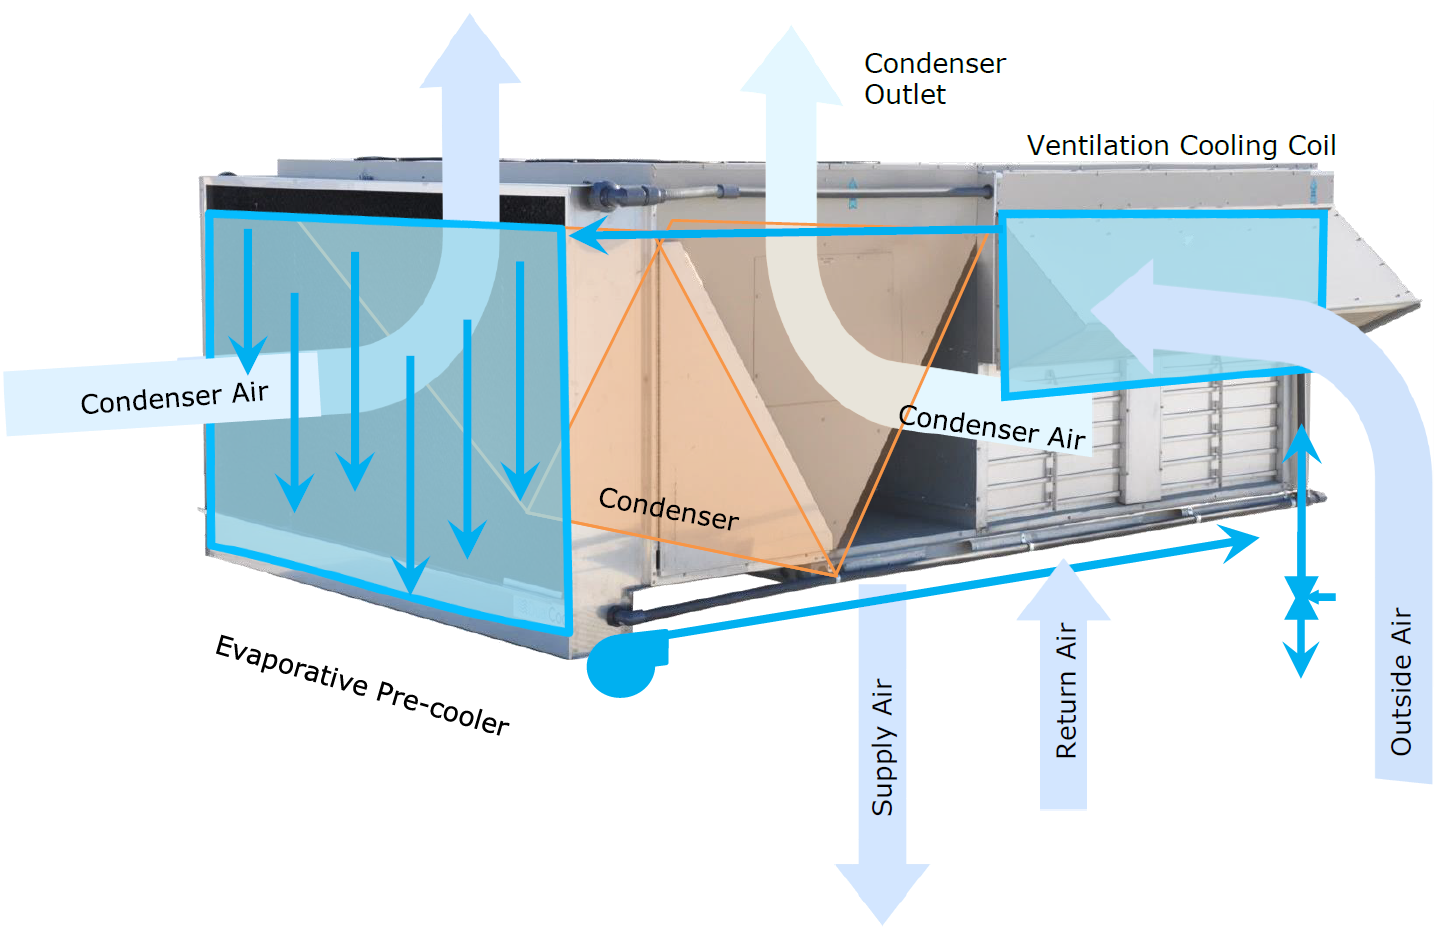 Indirect Evaporative Cooler : Indirect evaporative coolers on packaged rooftop units etcc